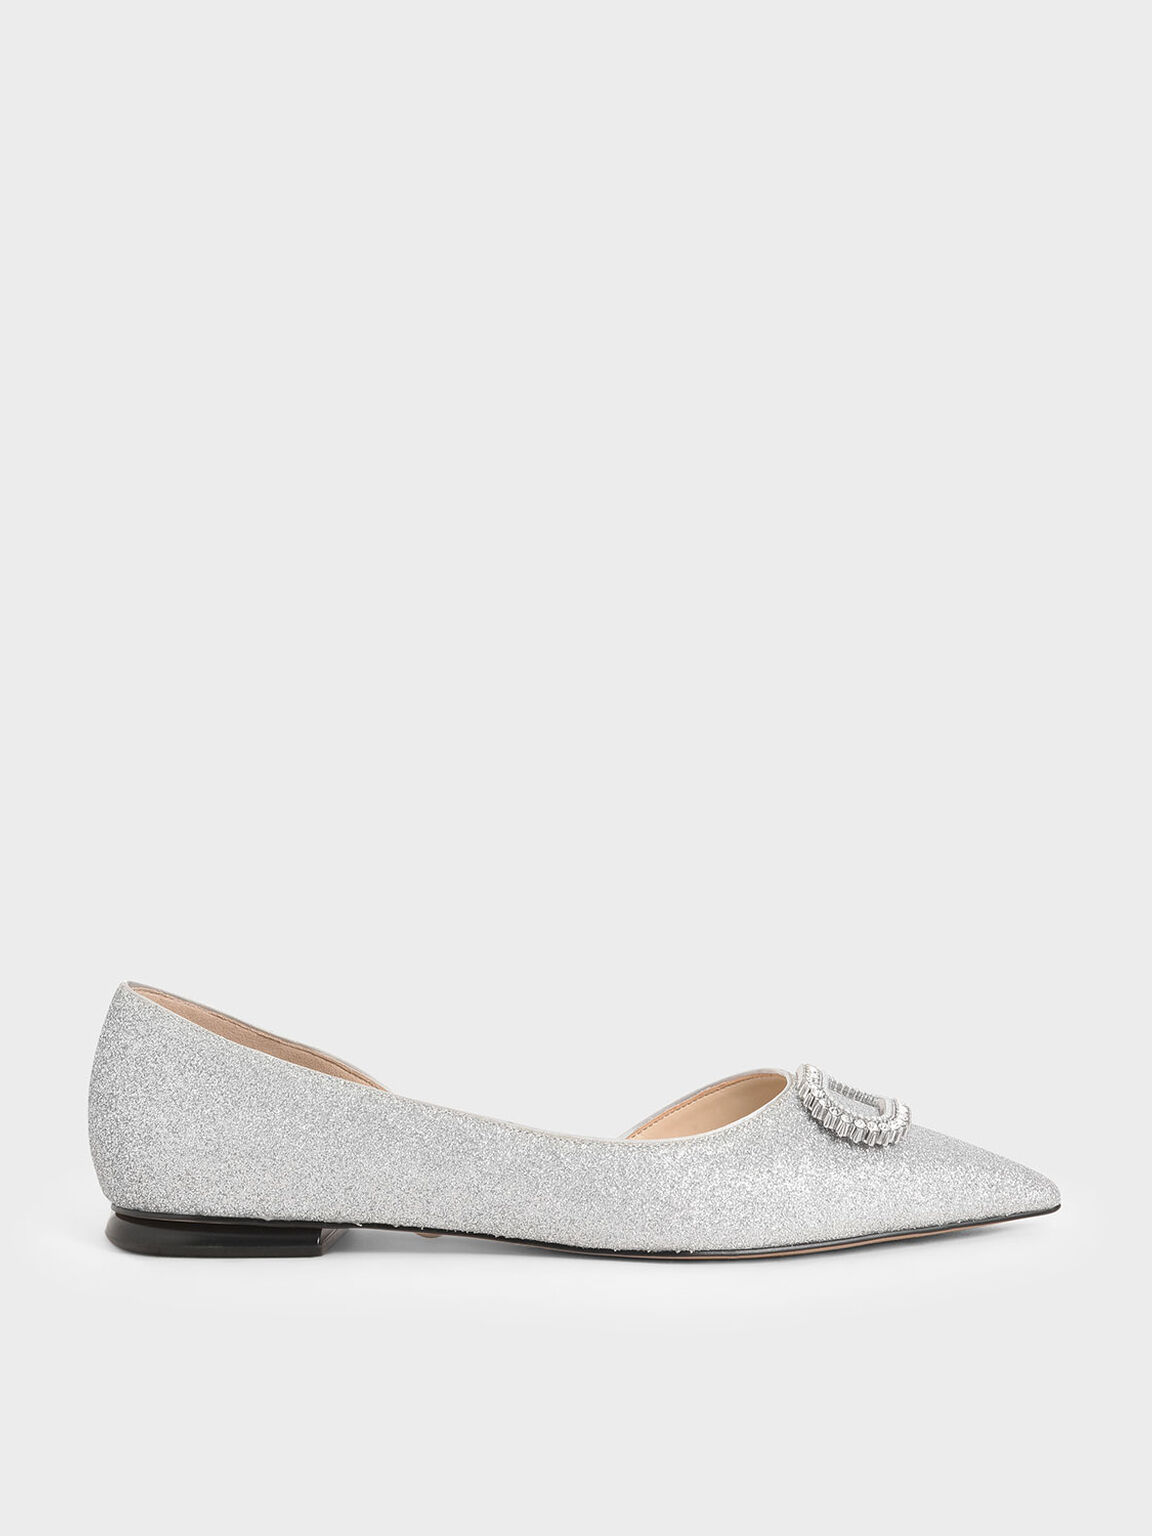 Wedding Collection: Embellished Glitter Ballerina Flats, Silver, hi-res